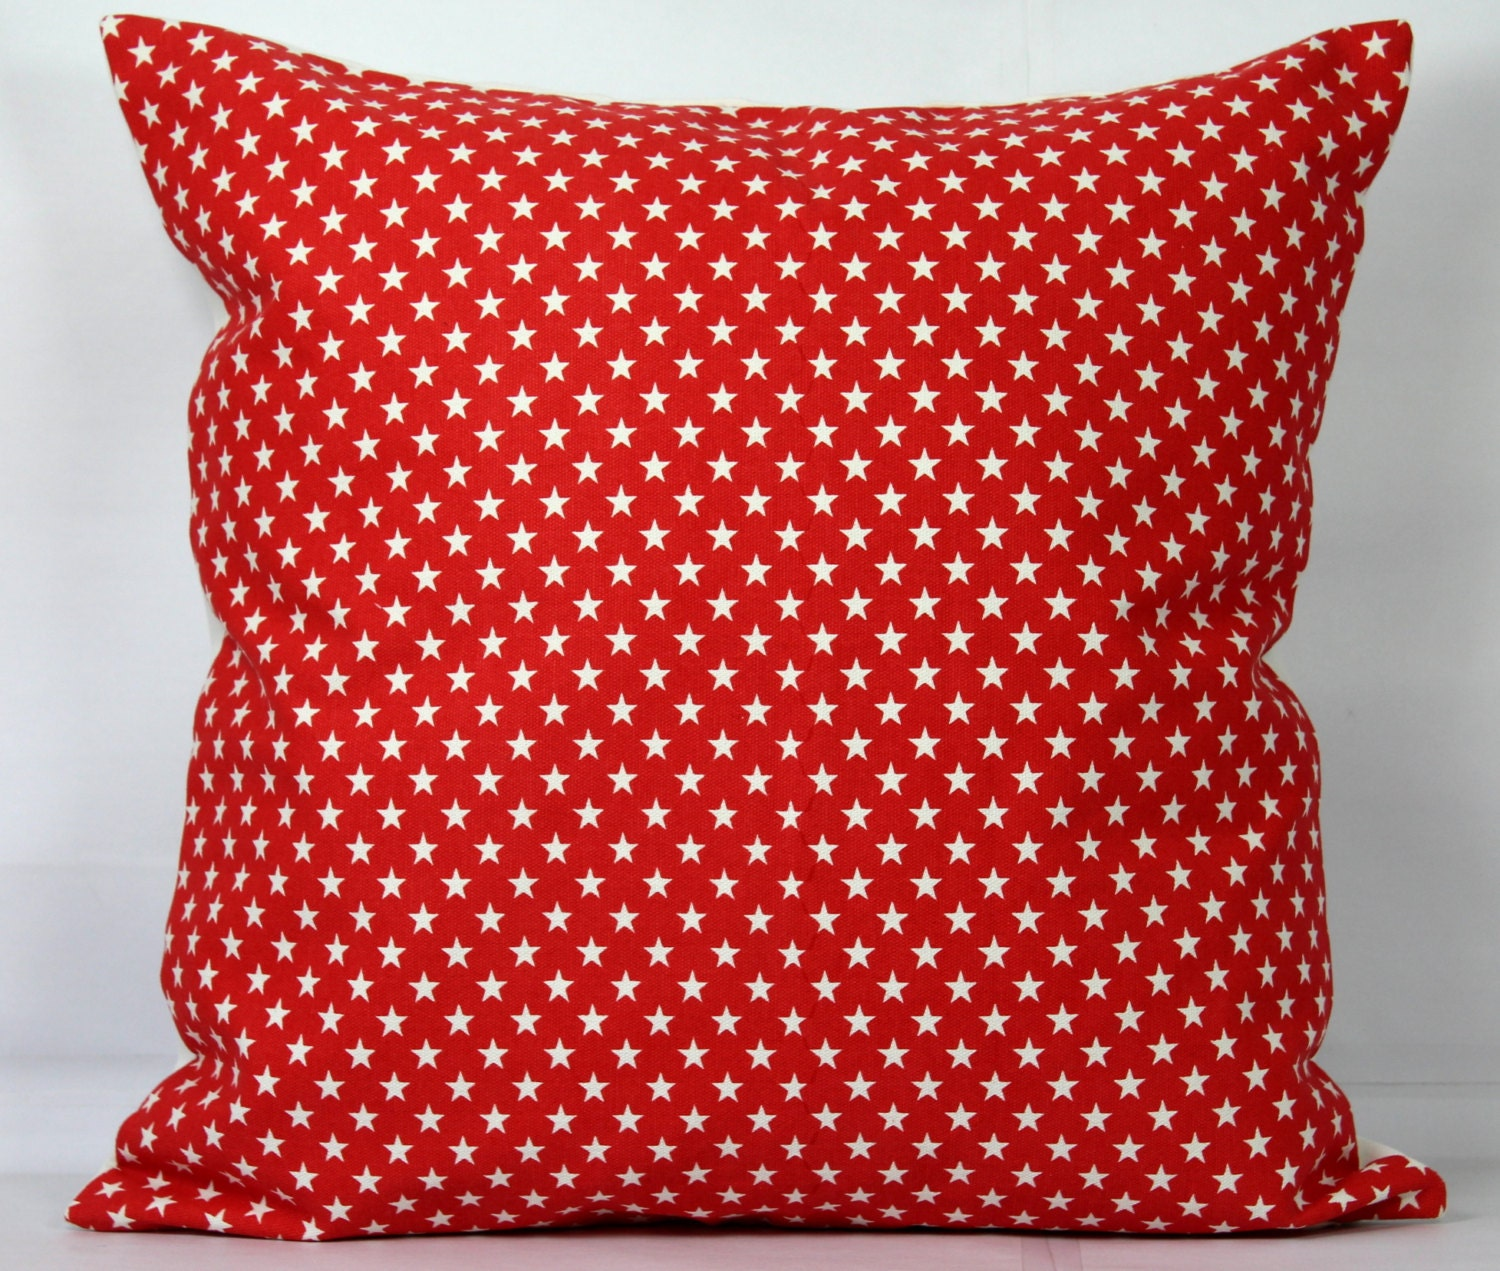 Red pillow cover red throw pillow covers 18x18 holiday pillows